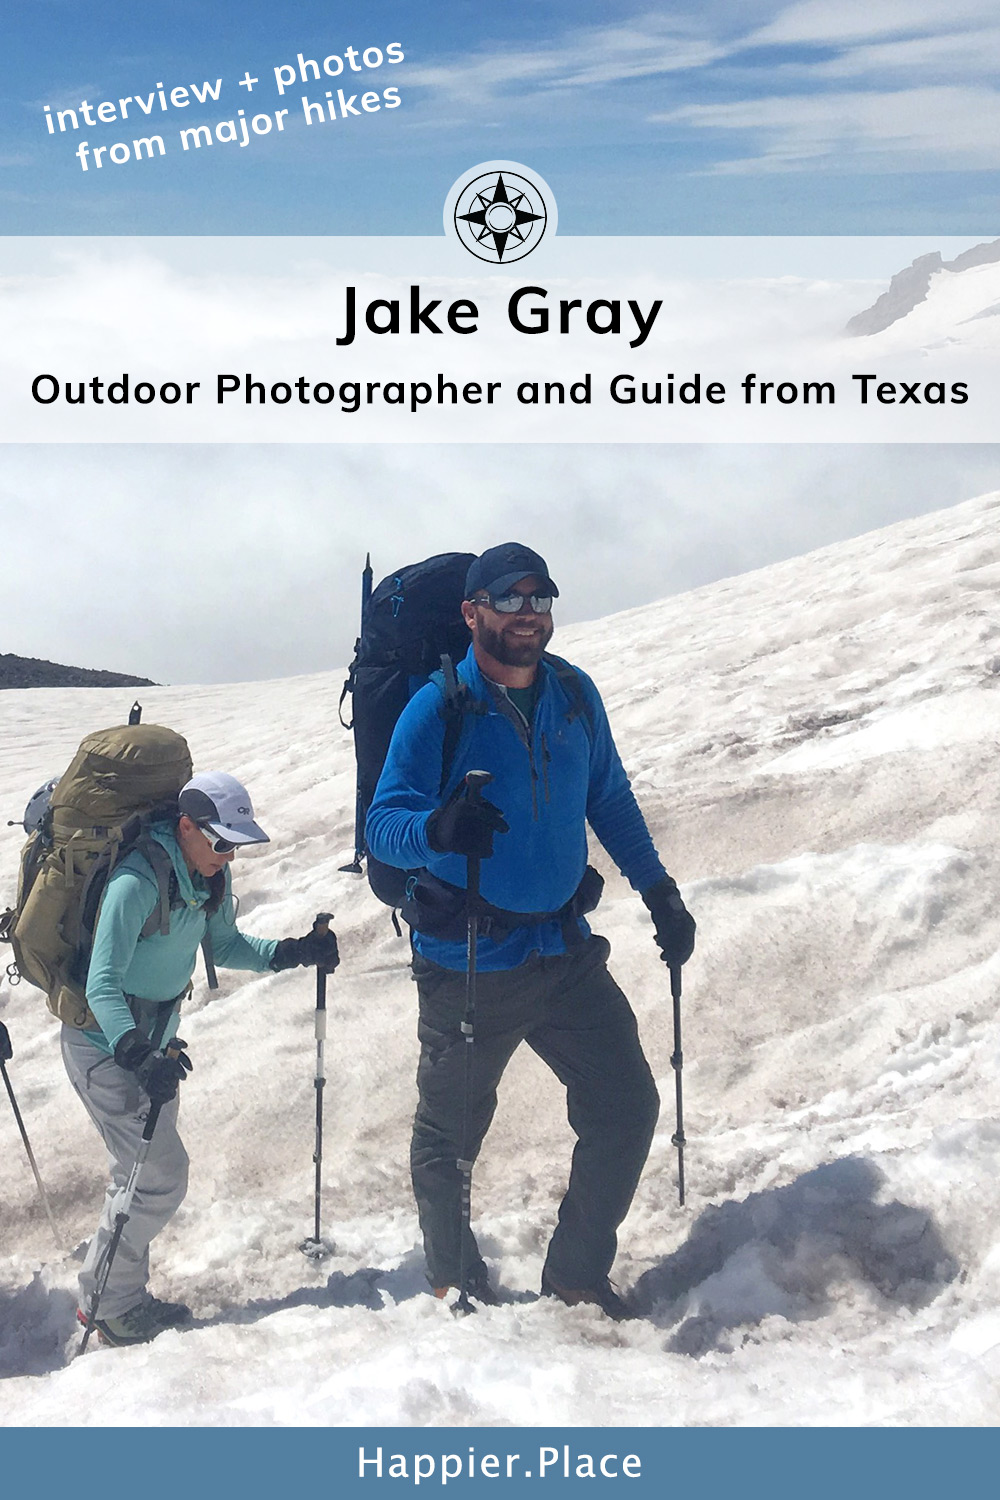 Jake Gray: Outdoor Photographer and Hiking Guide in Texas